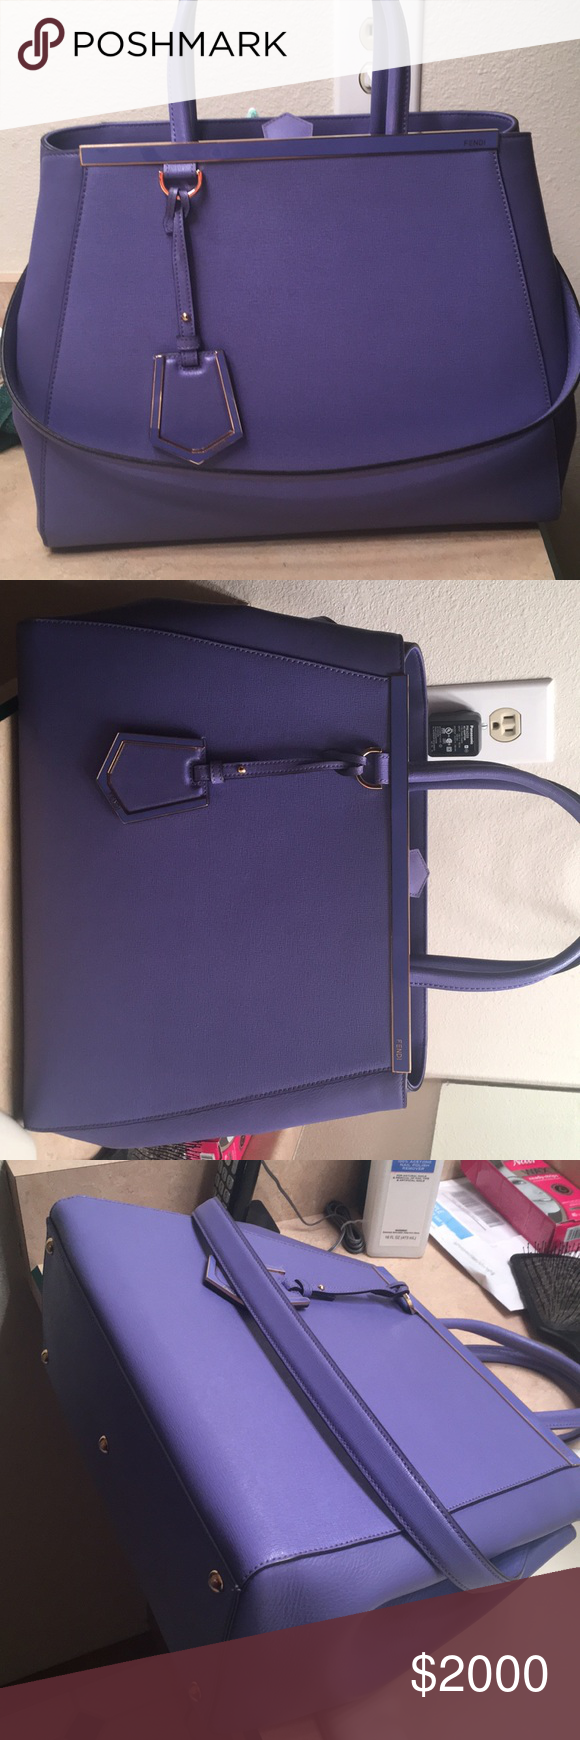 a18b32cc06 Fendi 2Jours Medium Saffiano Tote Bag FENDI 2Jours Medium Saffiano Tote Bag  in Purple. Fendi